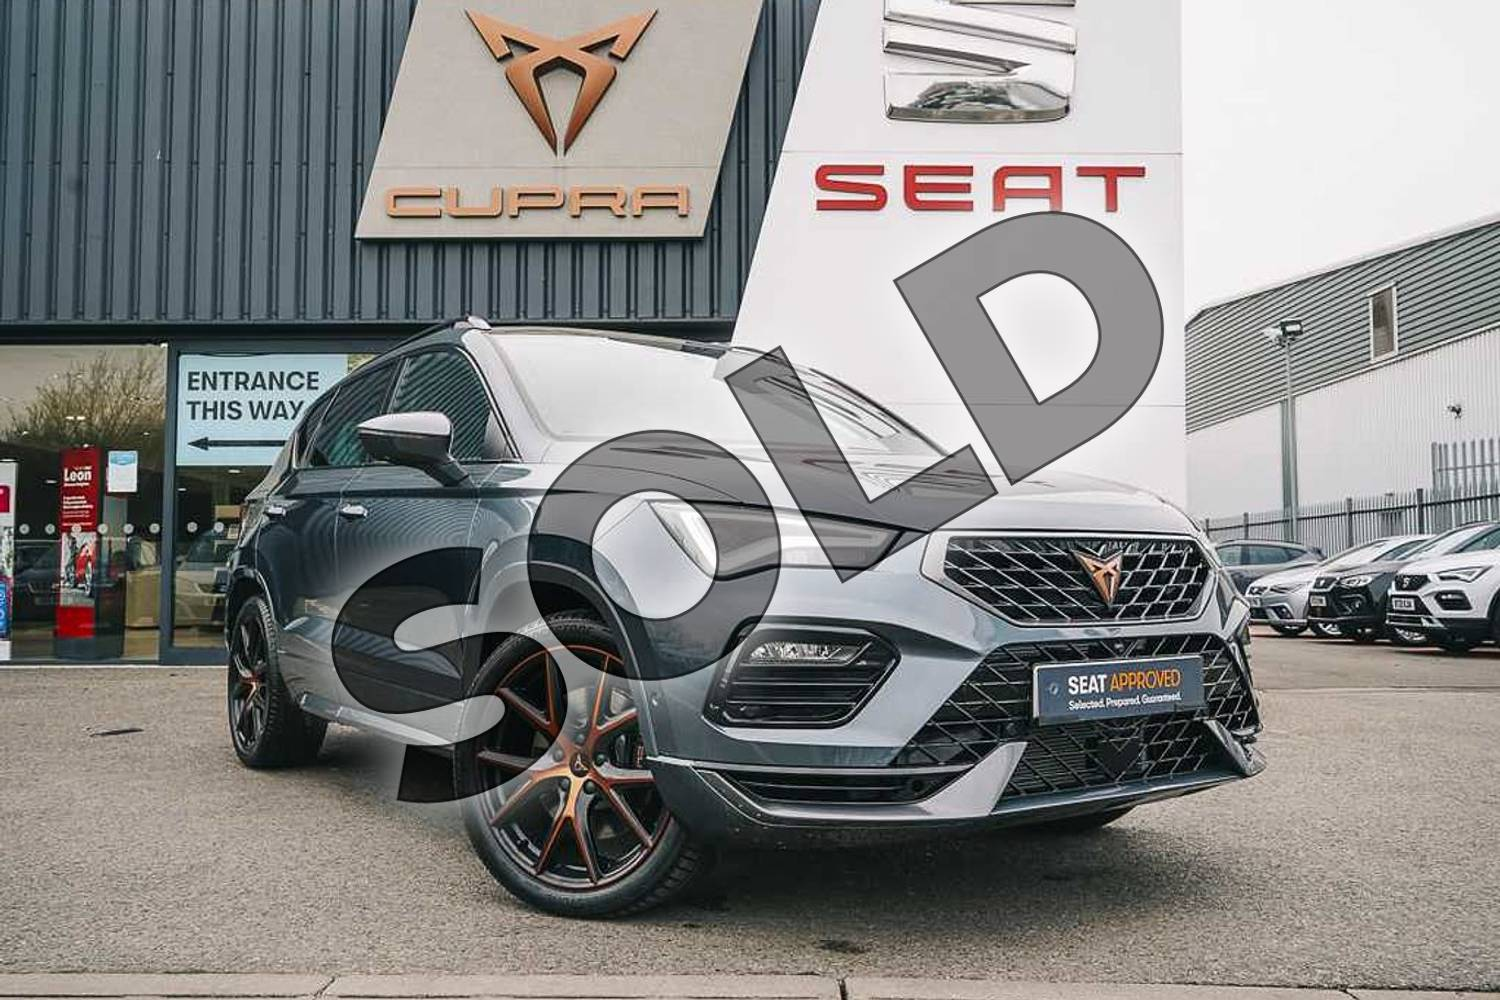 2021 Cupra Ateca Estate 2.0 TSI VZ1 5dr DSG 4Drive in Grey at Listers SEAT Coventry